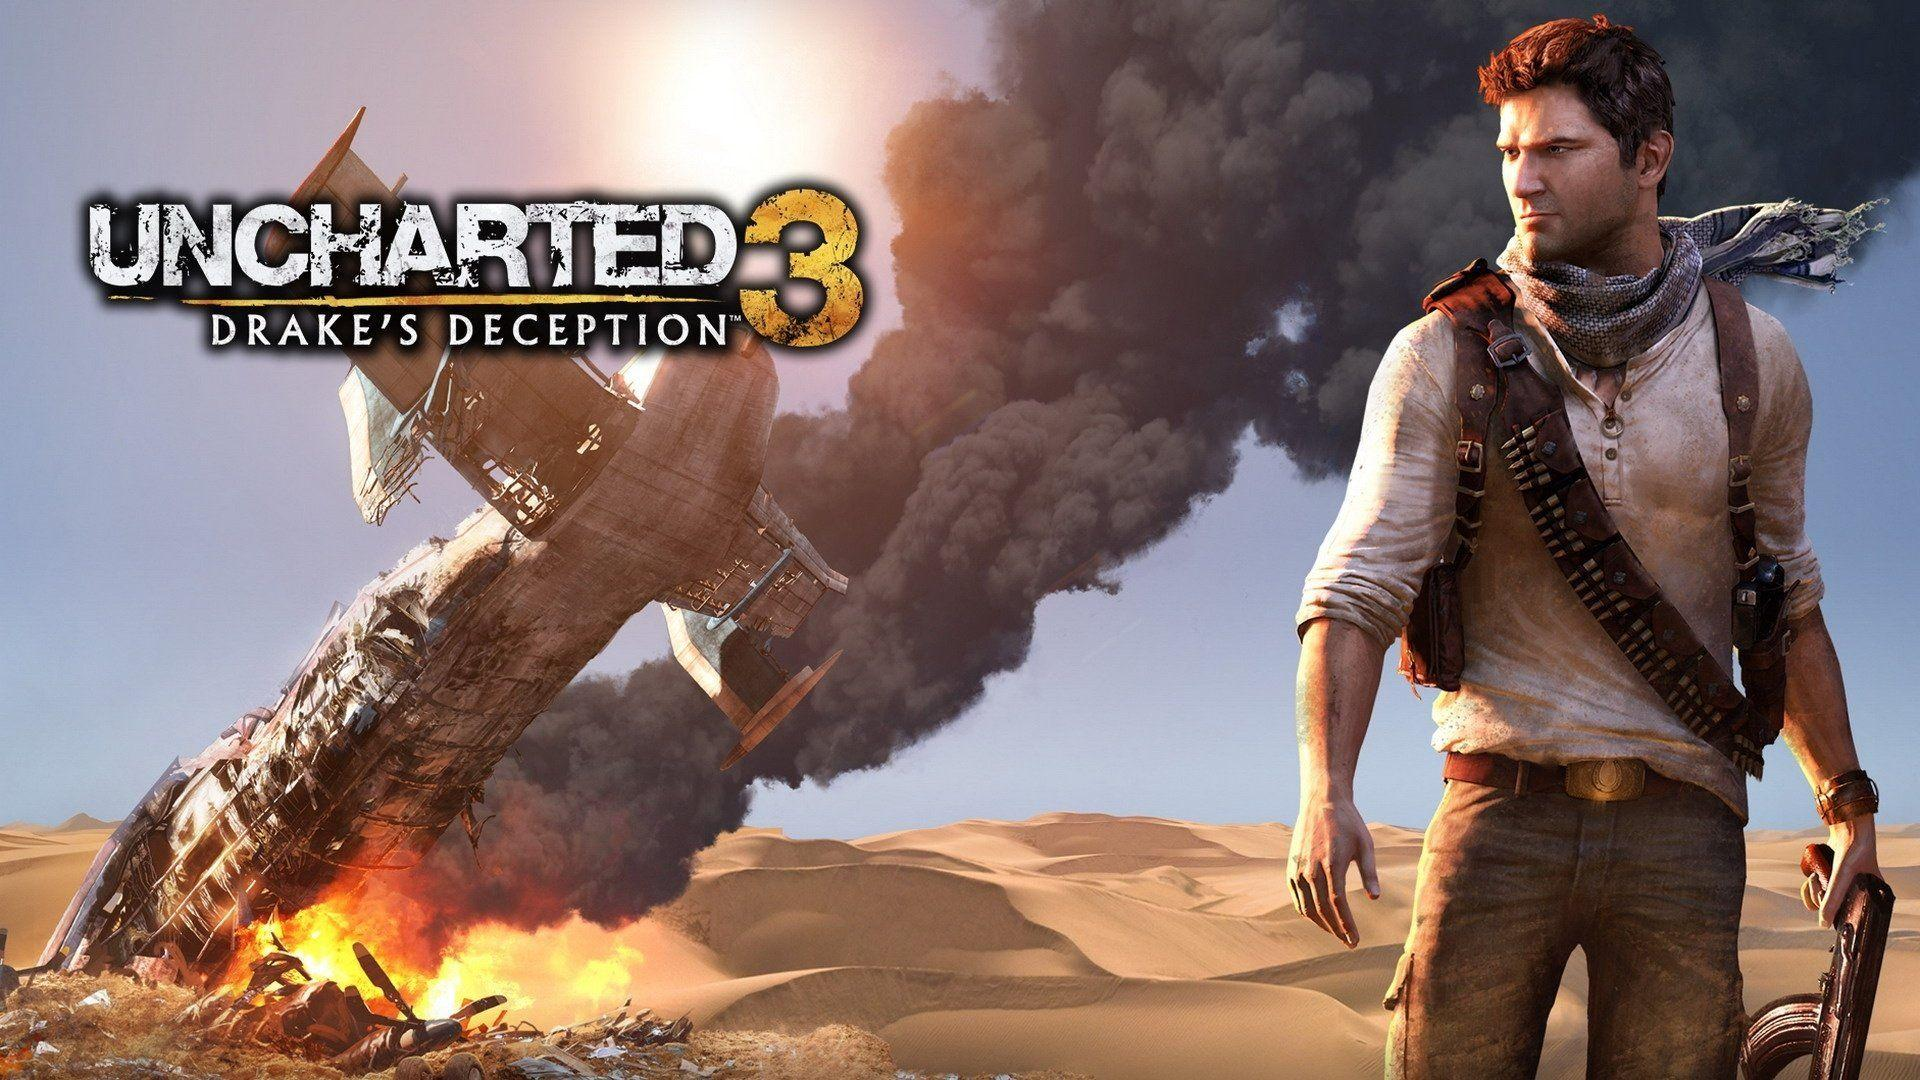 Uncharted 3 Wallpapers Hd Wallpaper Cave